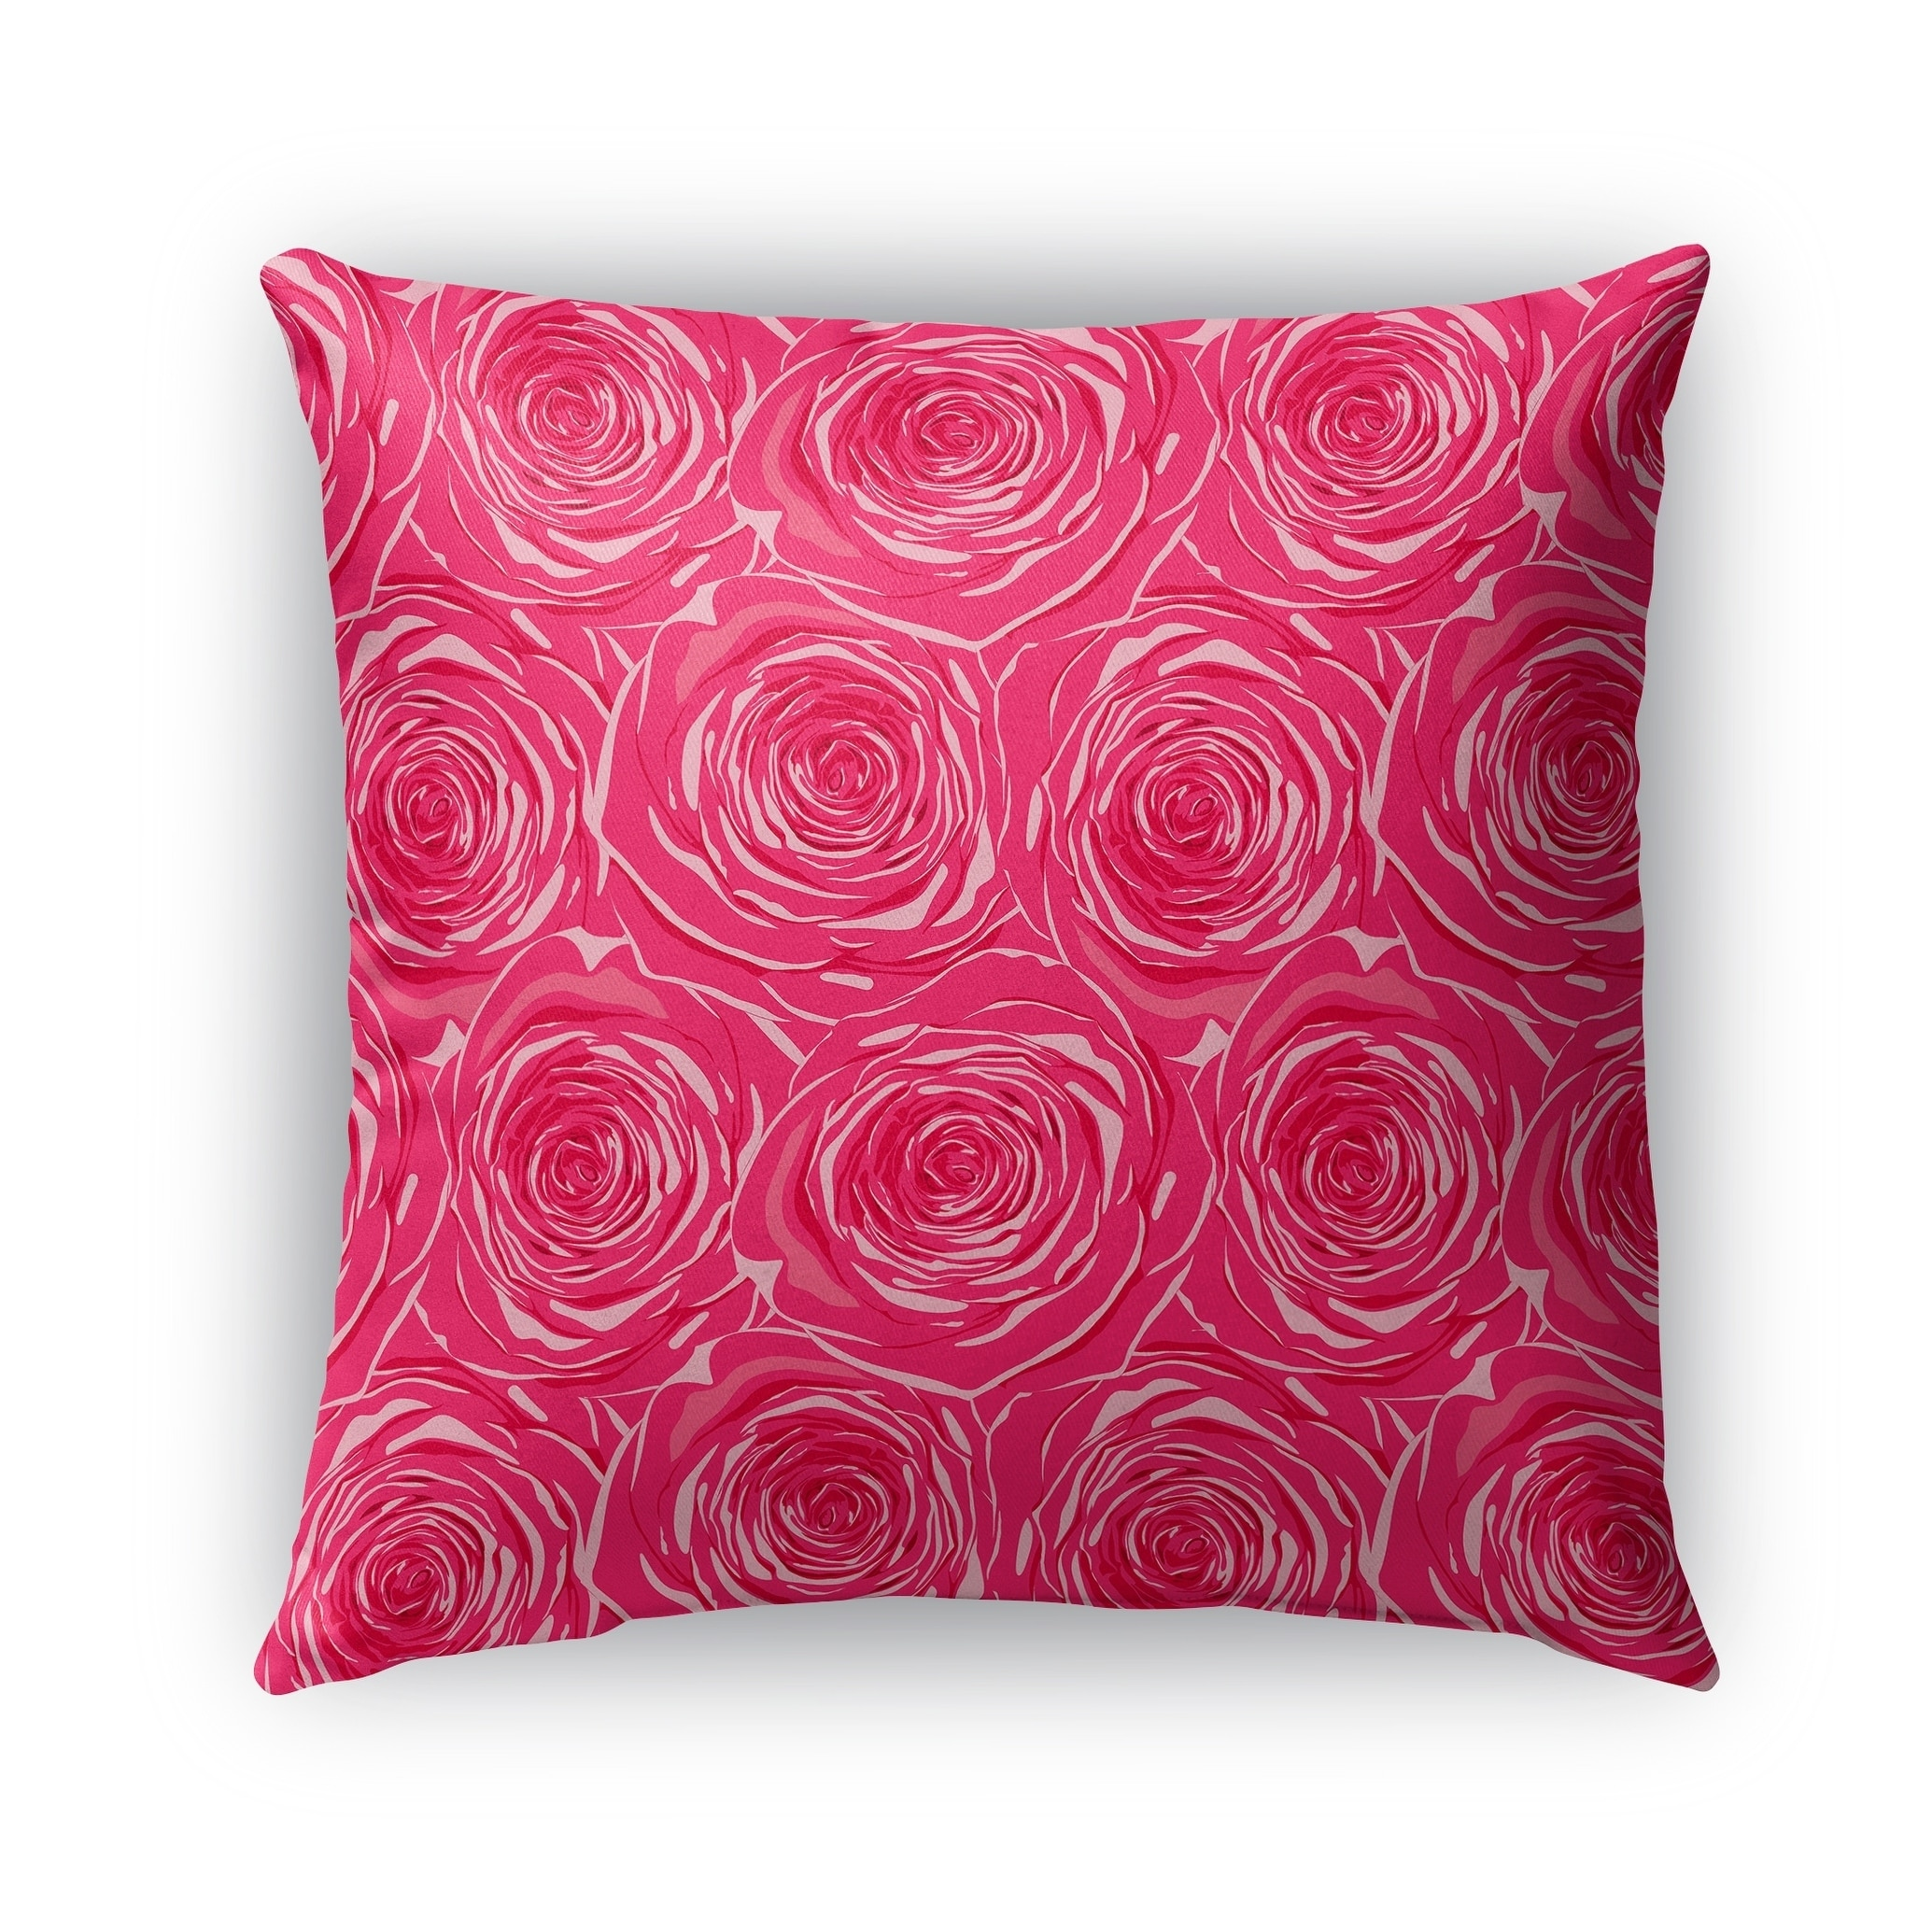 Shop Kavka Designs Pink Bed Of Roses Outdoor Pillow By Kavka